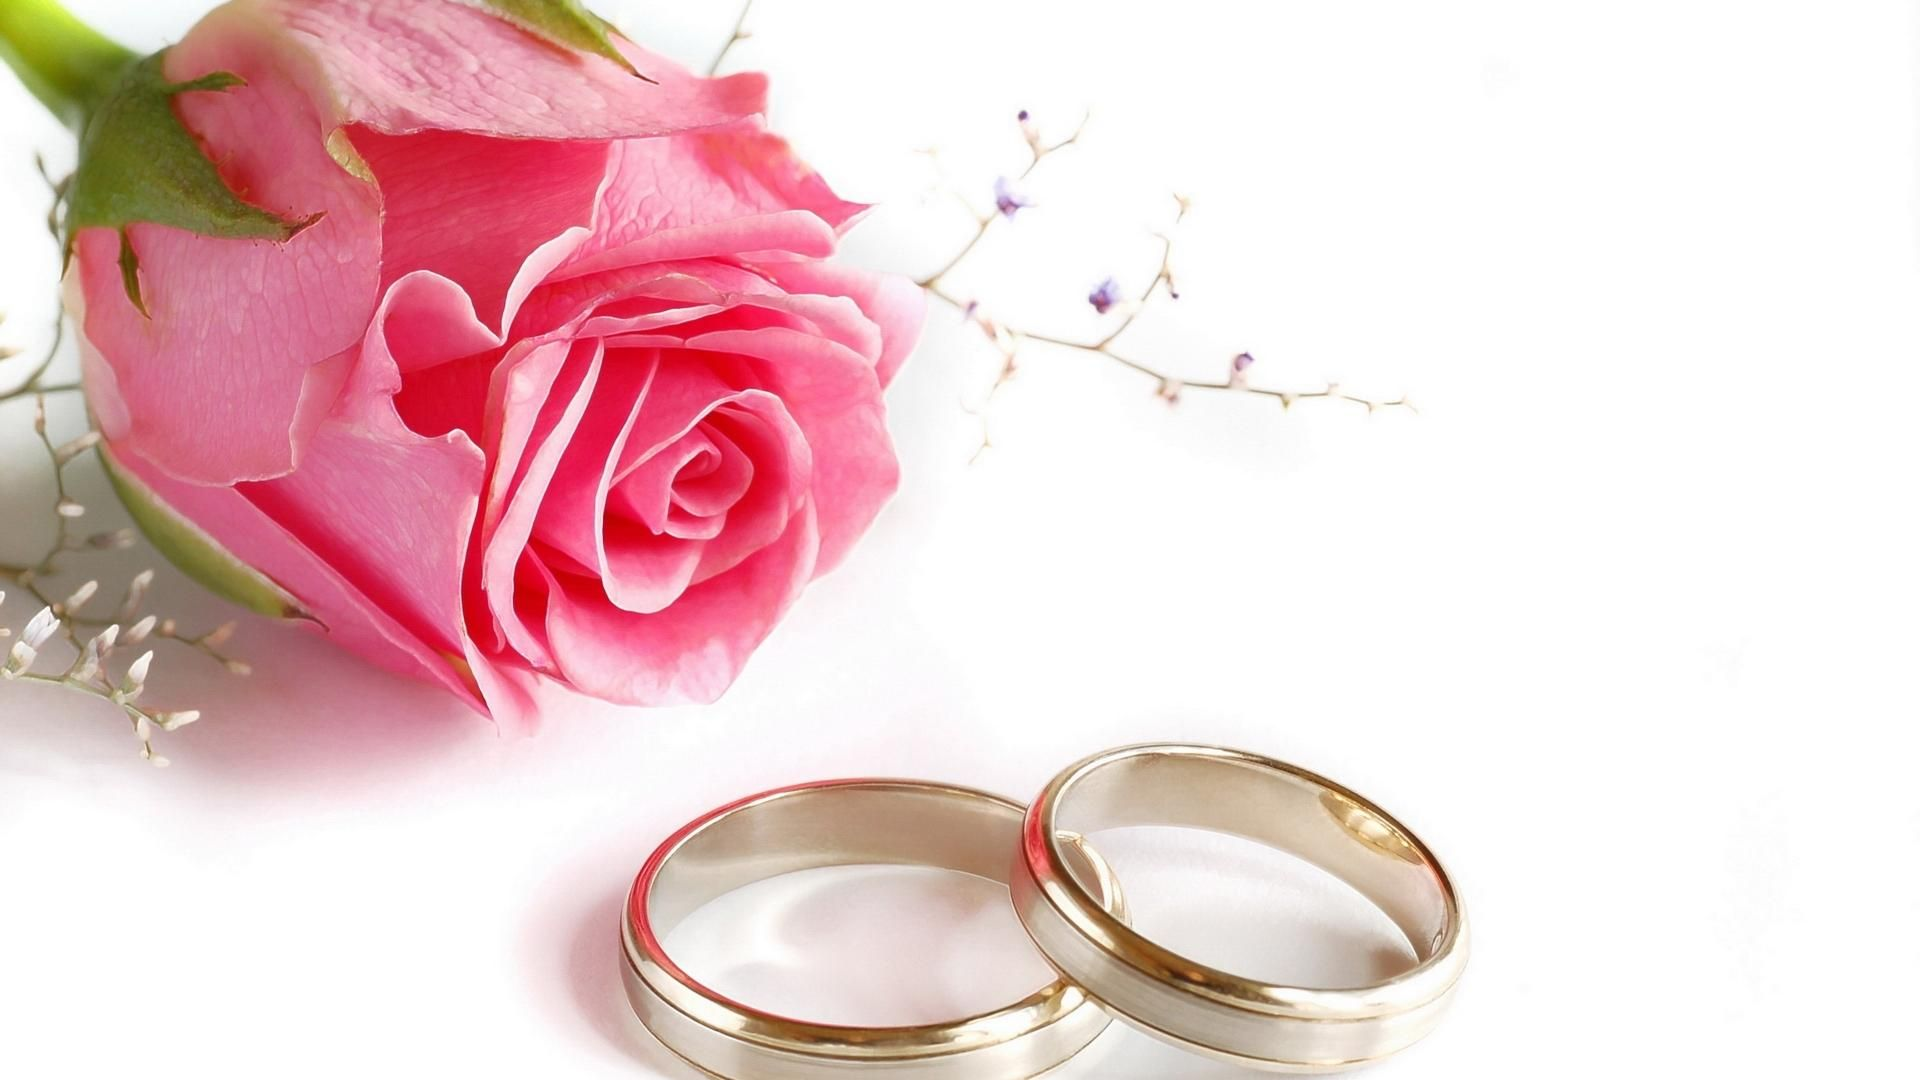 Wedding Rings Rose Flower HD Wallpaper